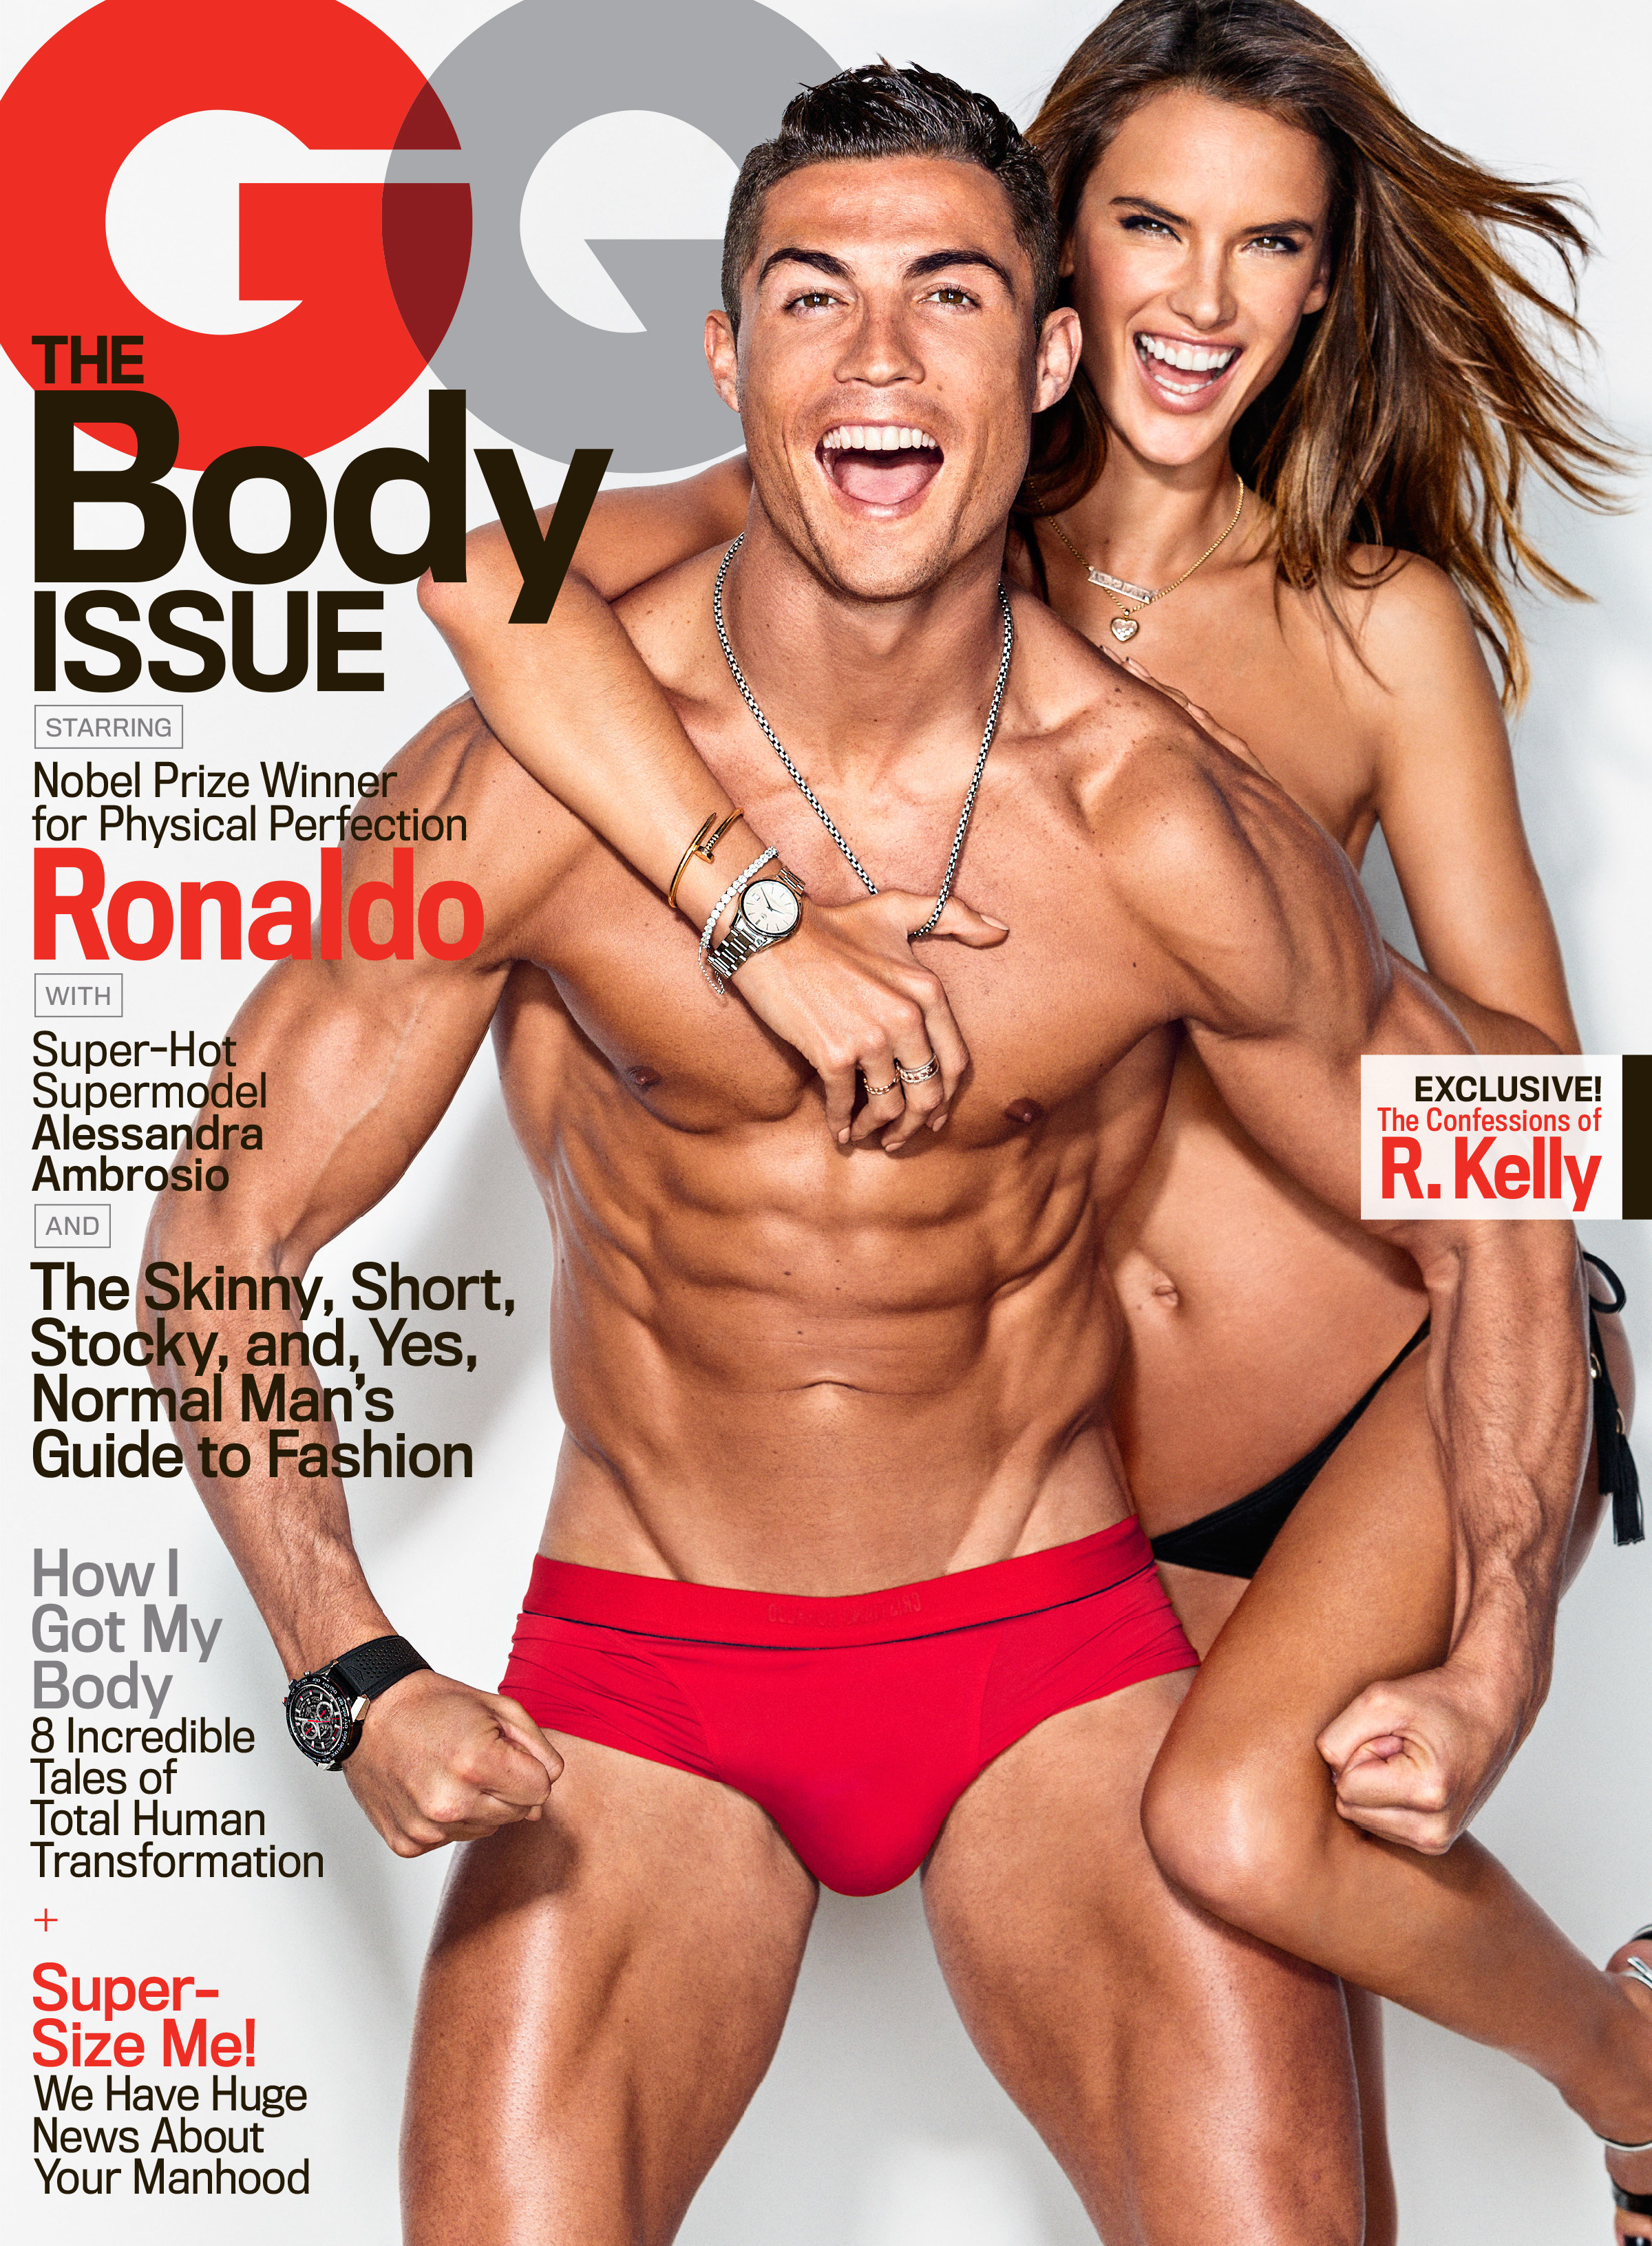 Cristiano-Ronaldo-2016-GQ-Cover-Photo-Shoot-001